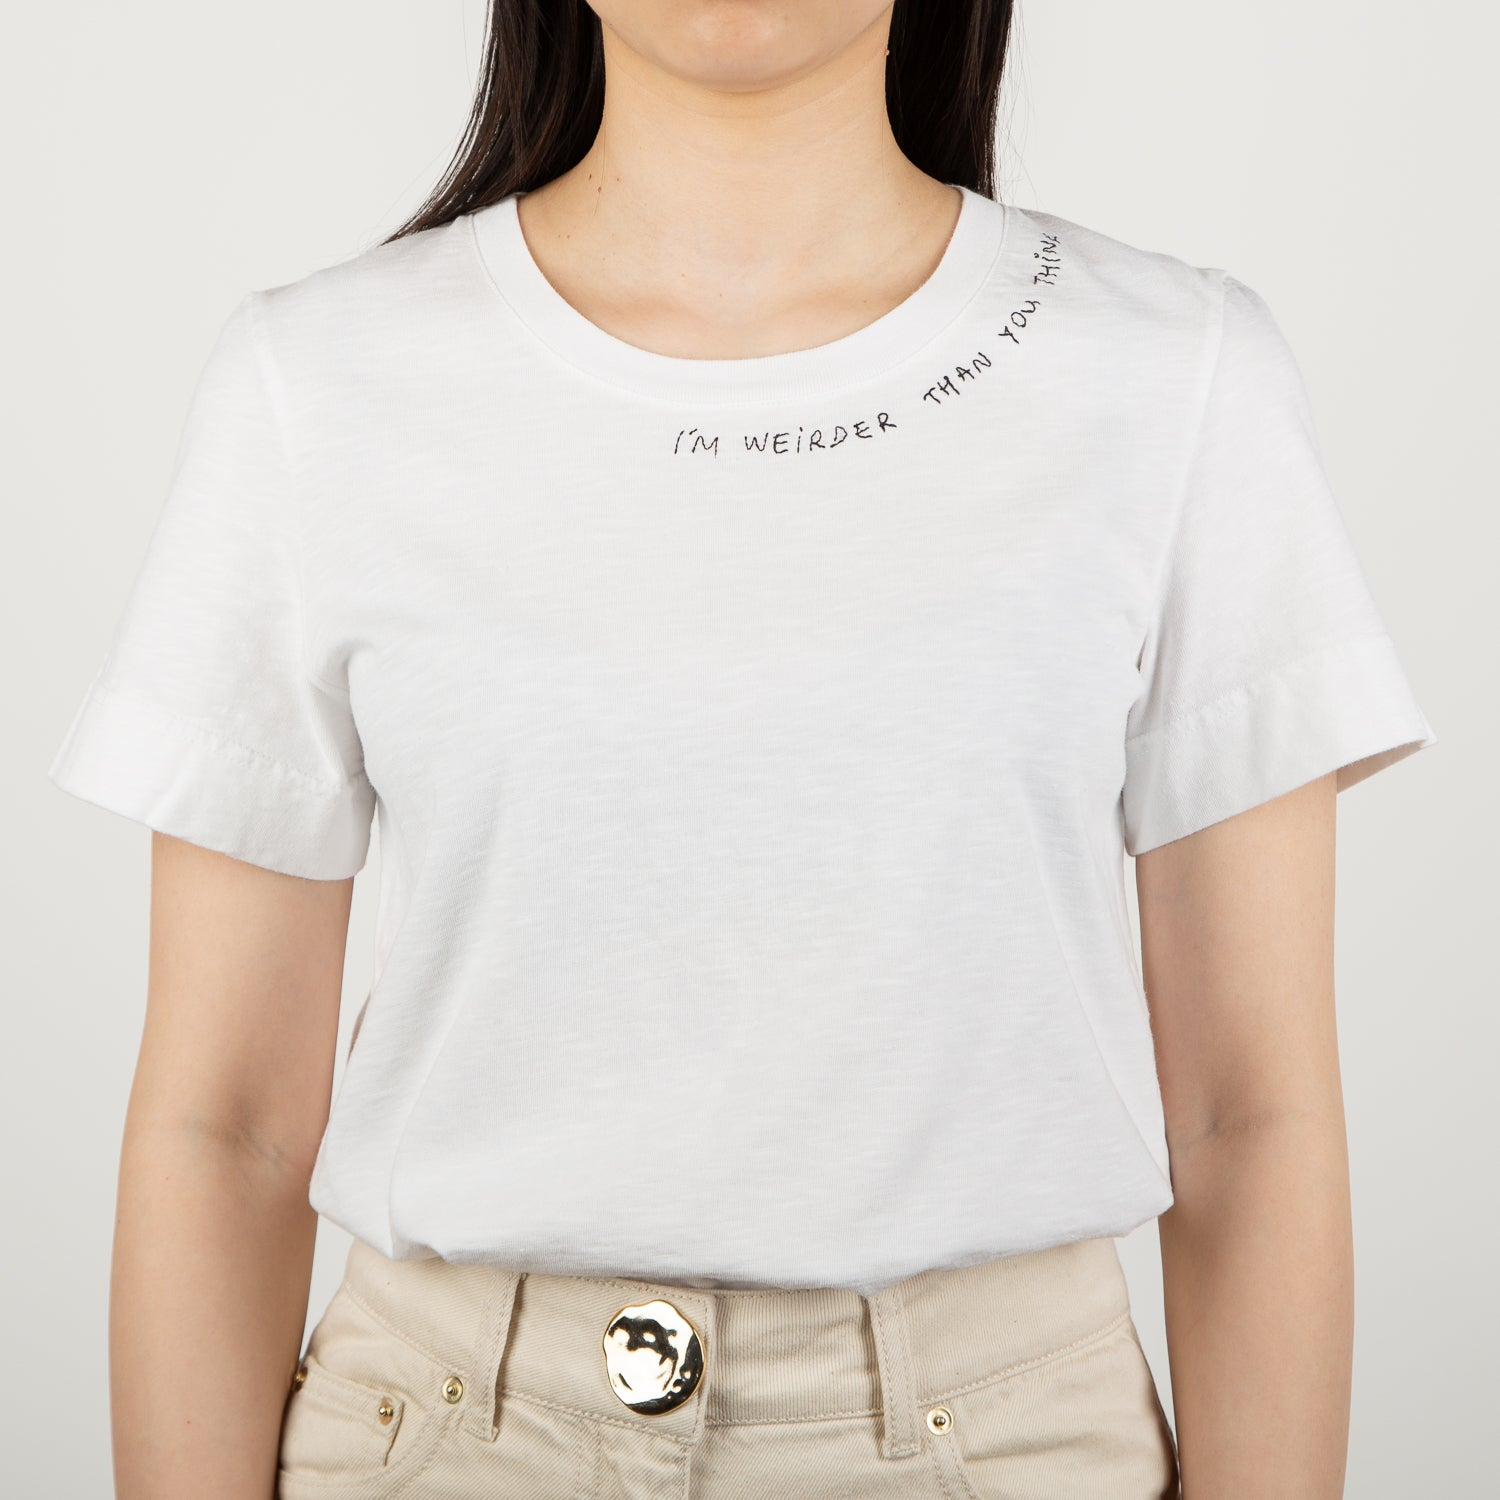 """I'm Weirder Than You Think"" T-shirt, white"